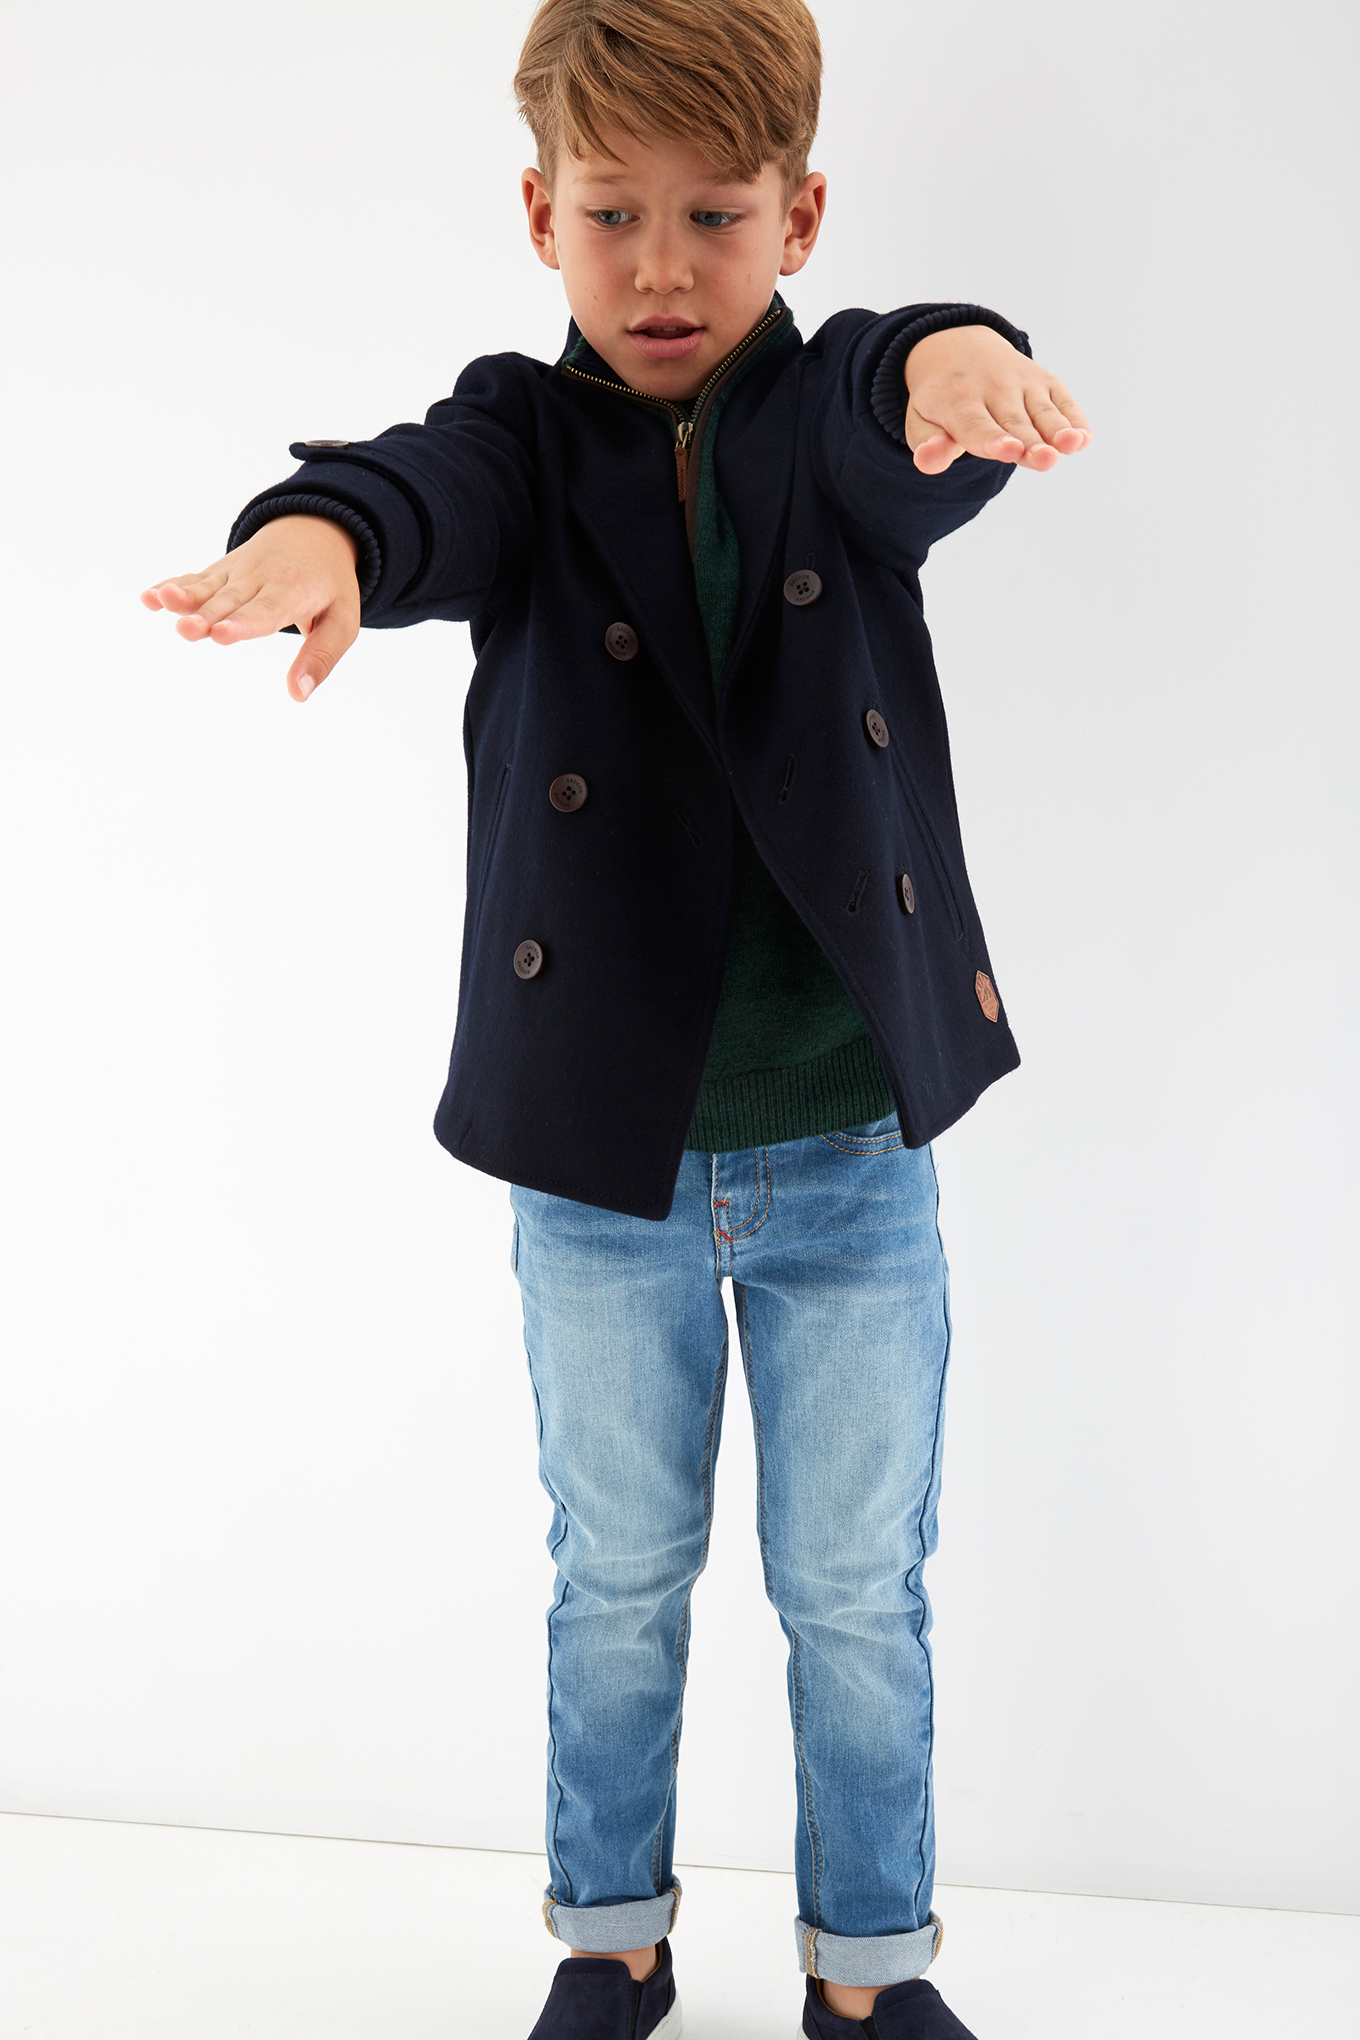 Overcoat Dark Blue Casual Boy